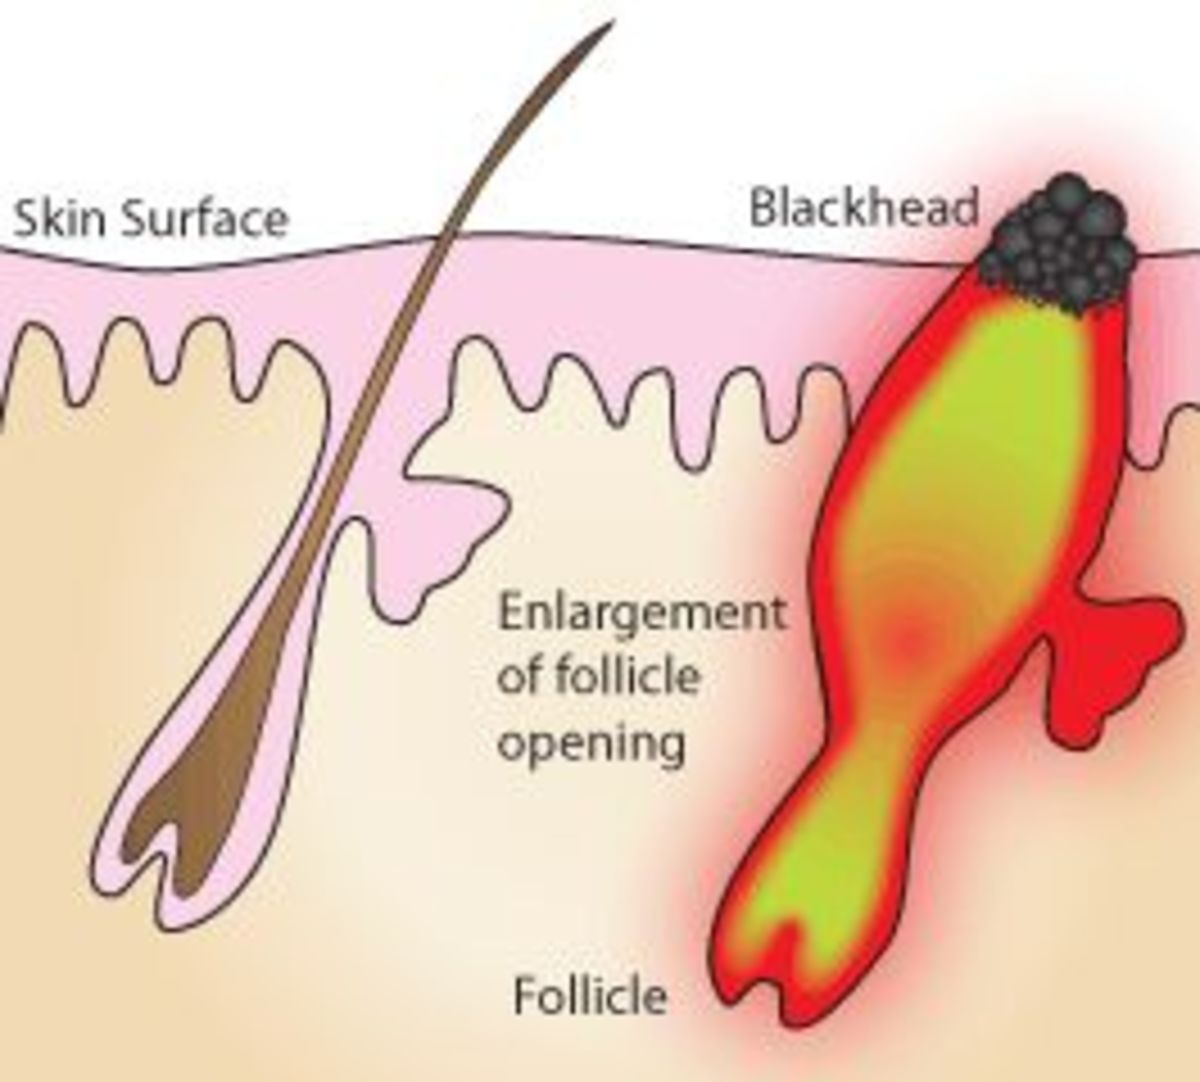 how-to-we-get-rid-of-blackheads-and-whiteheads